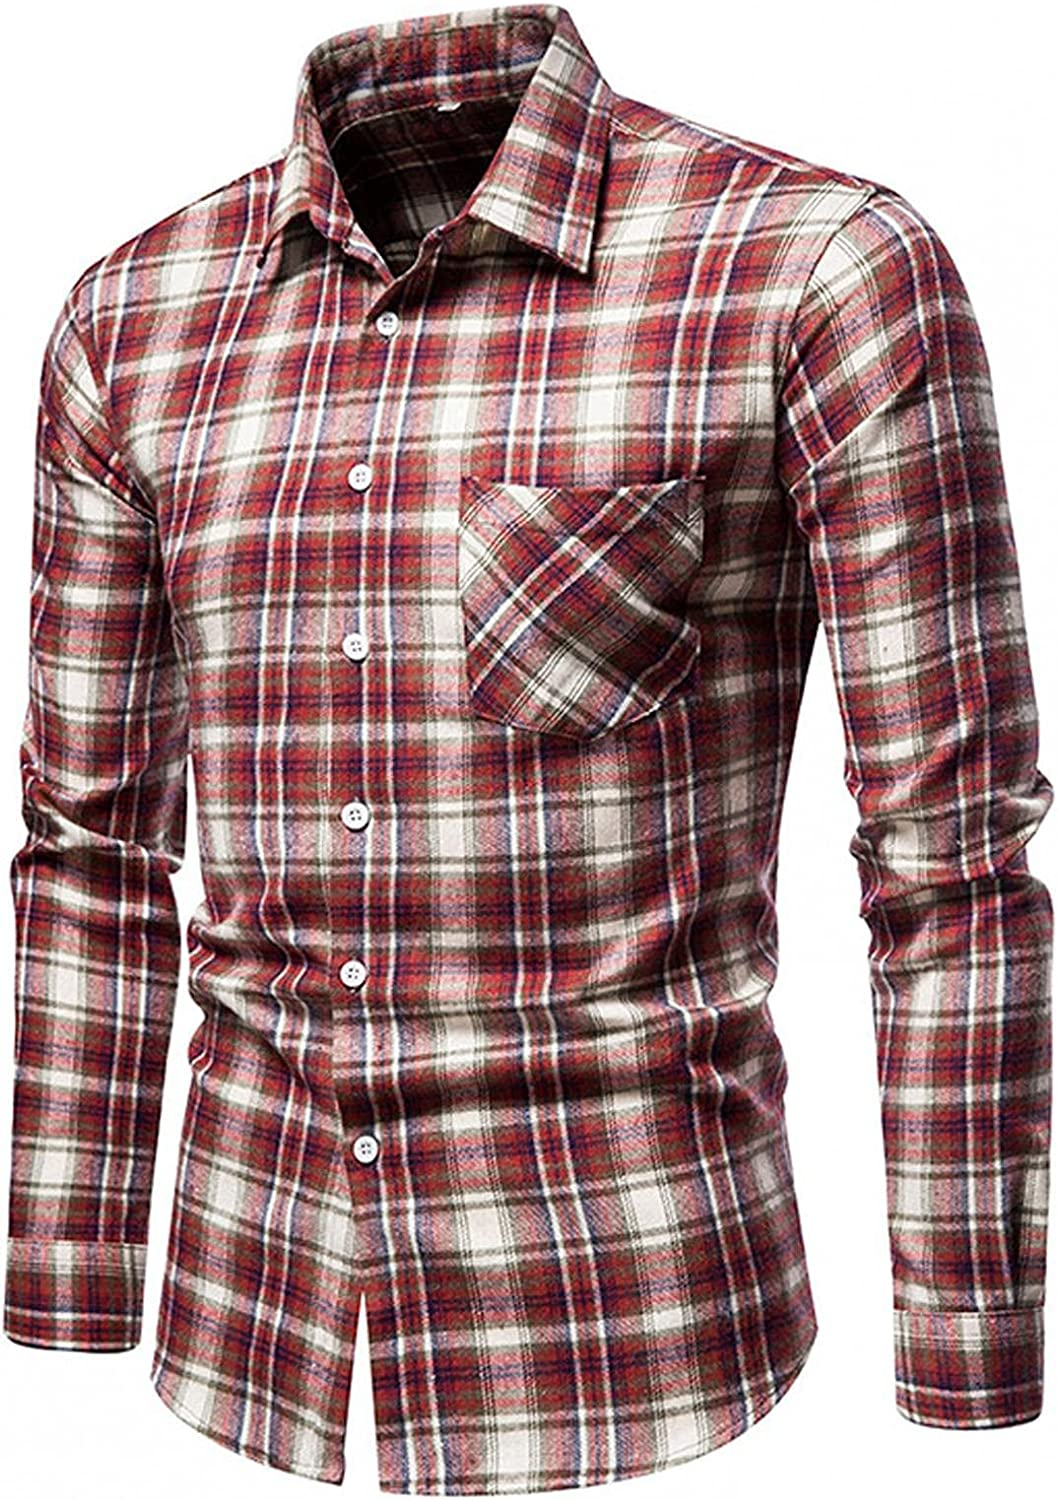 WoCoo Mens Plaid Shirt Long Sleeve Turn-down Button Top Standard-Fit Cotton Blouse Casual Loose Flannel T Shirts